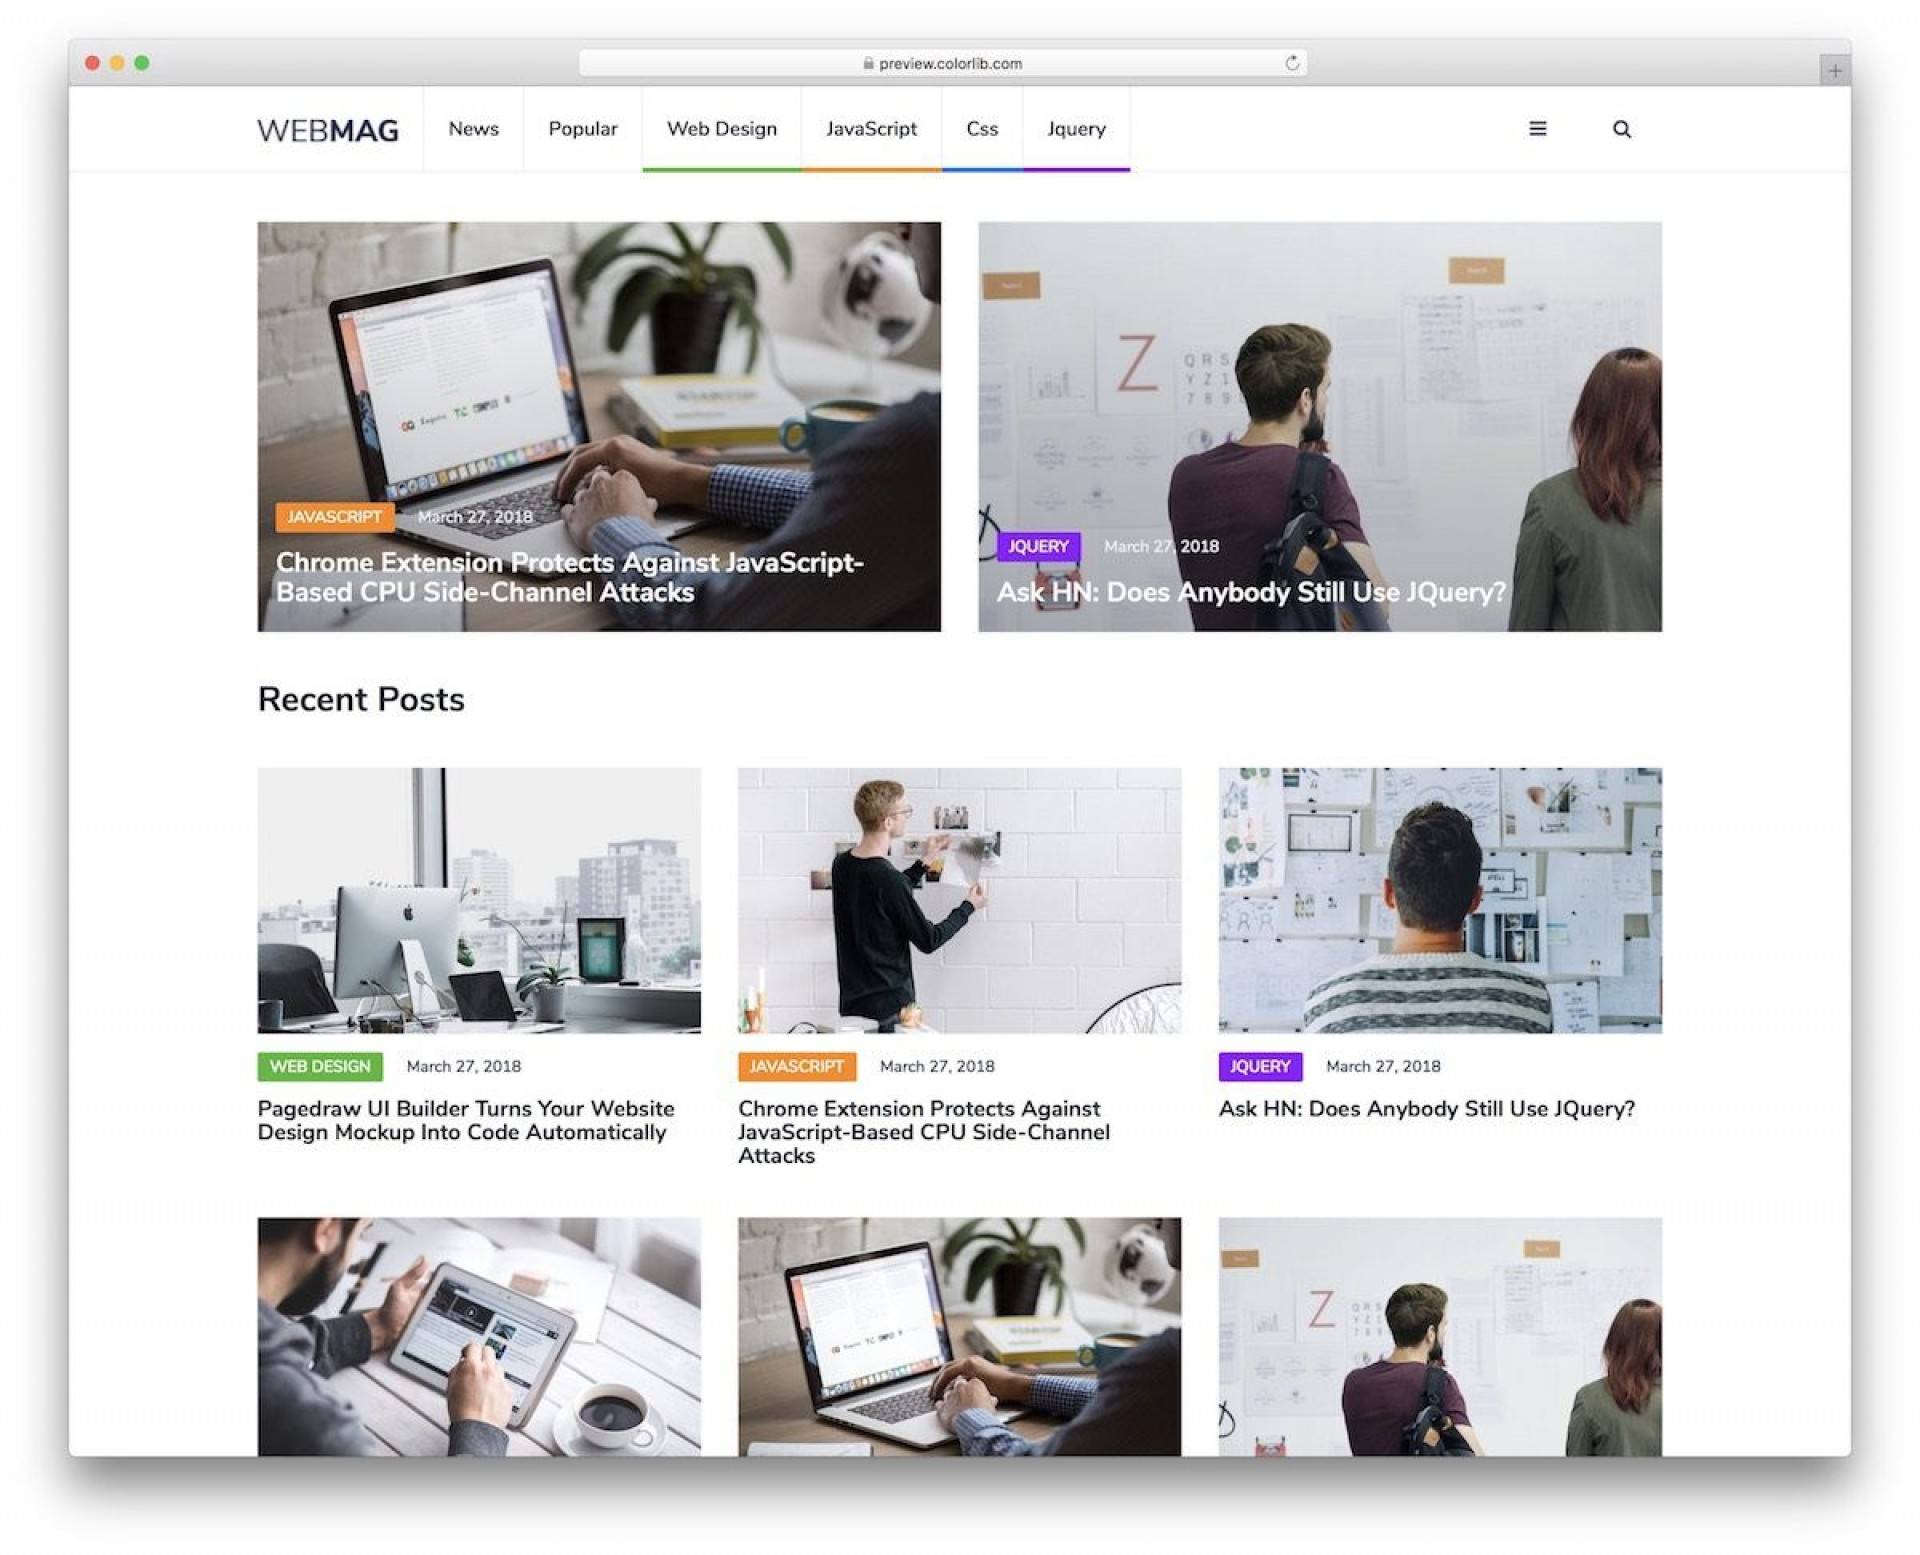 002 Top Free Cs Professional Website Template Download Idea  Html With Jquery1920